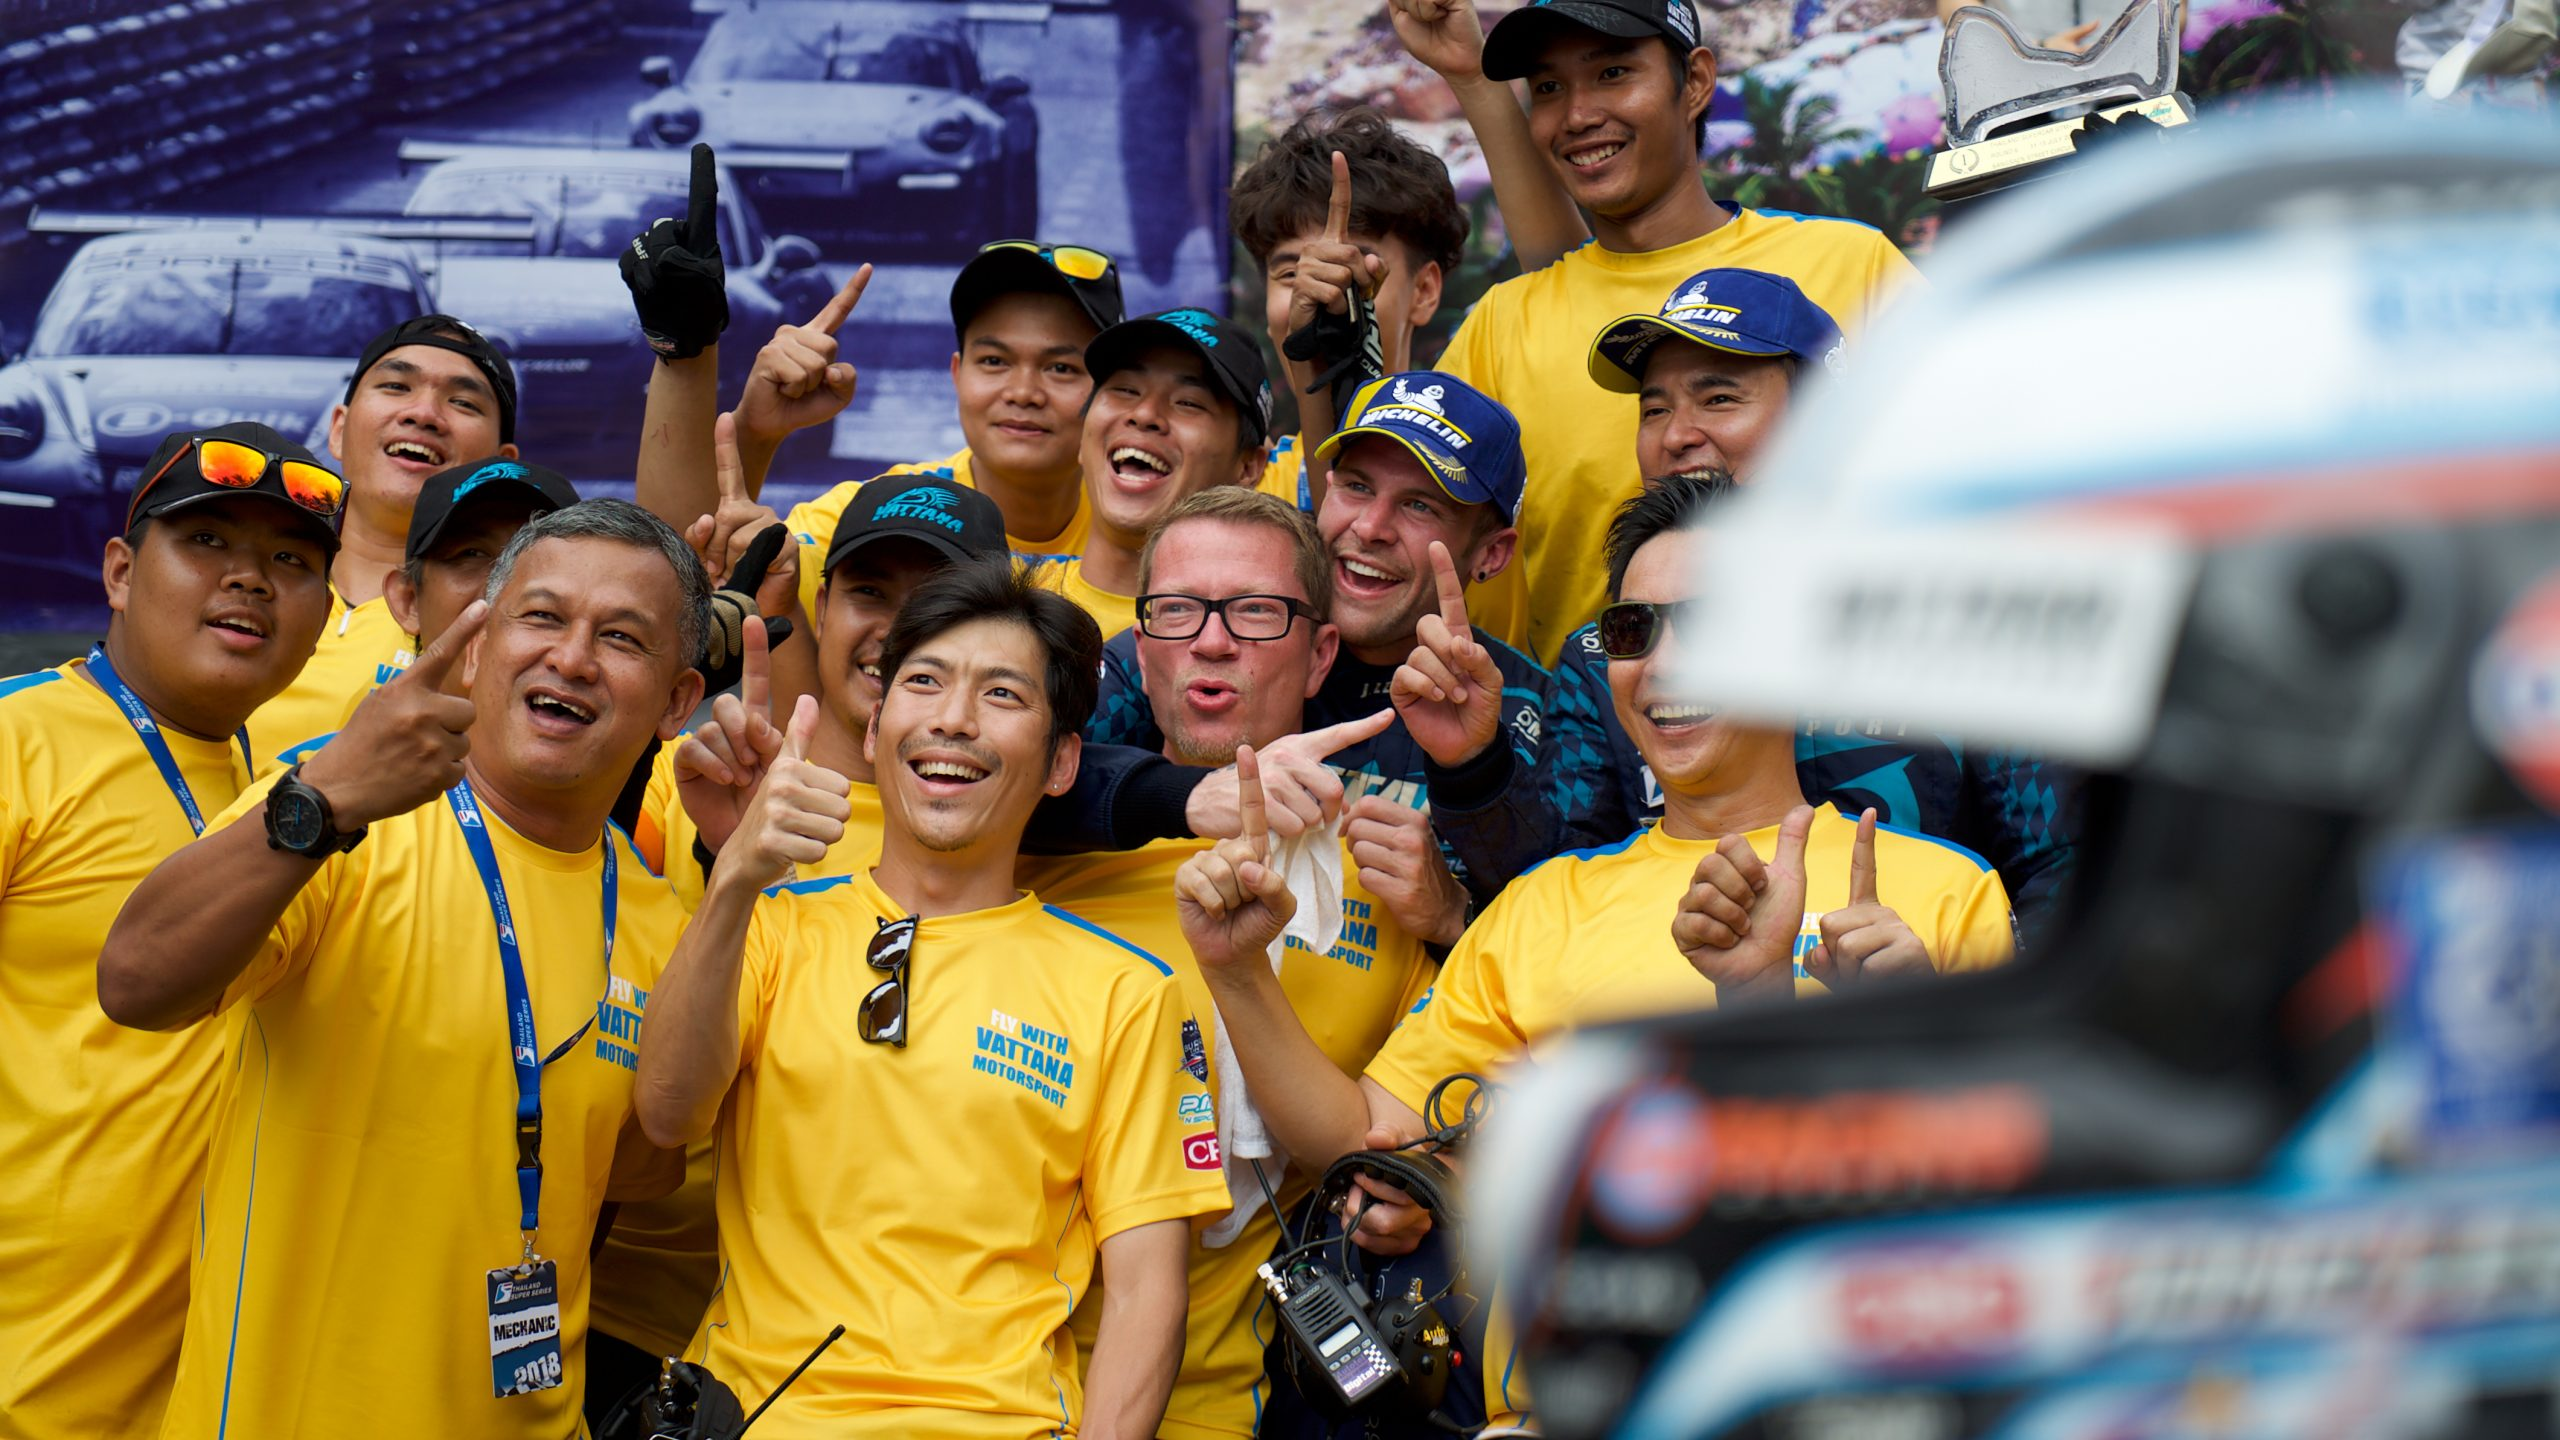 Jono Lester celebrates with the Vattana Motorsport team